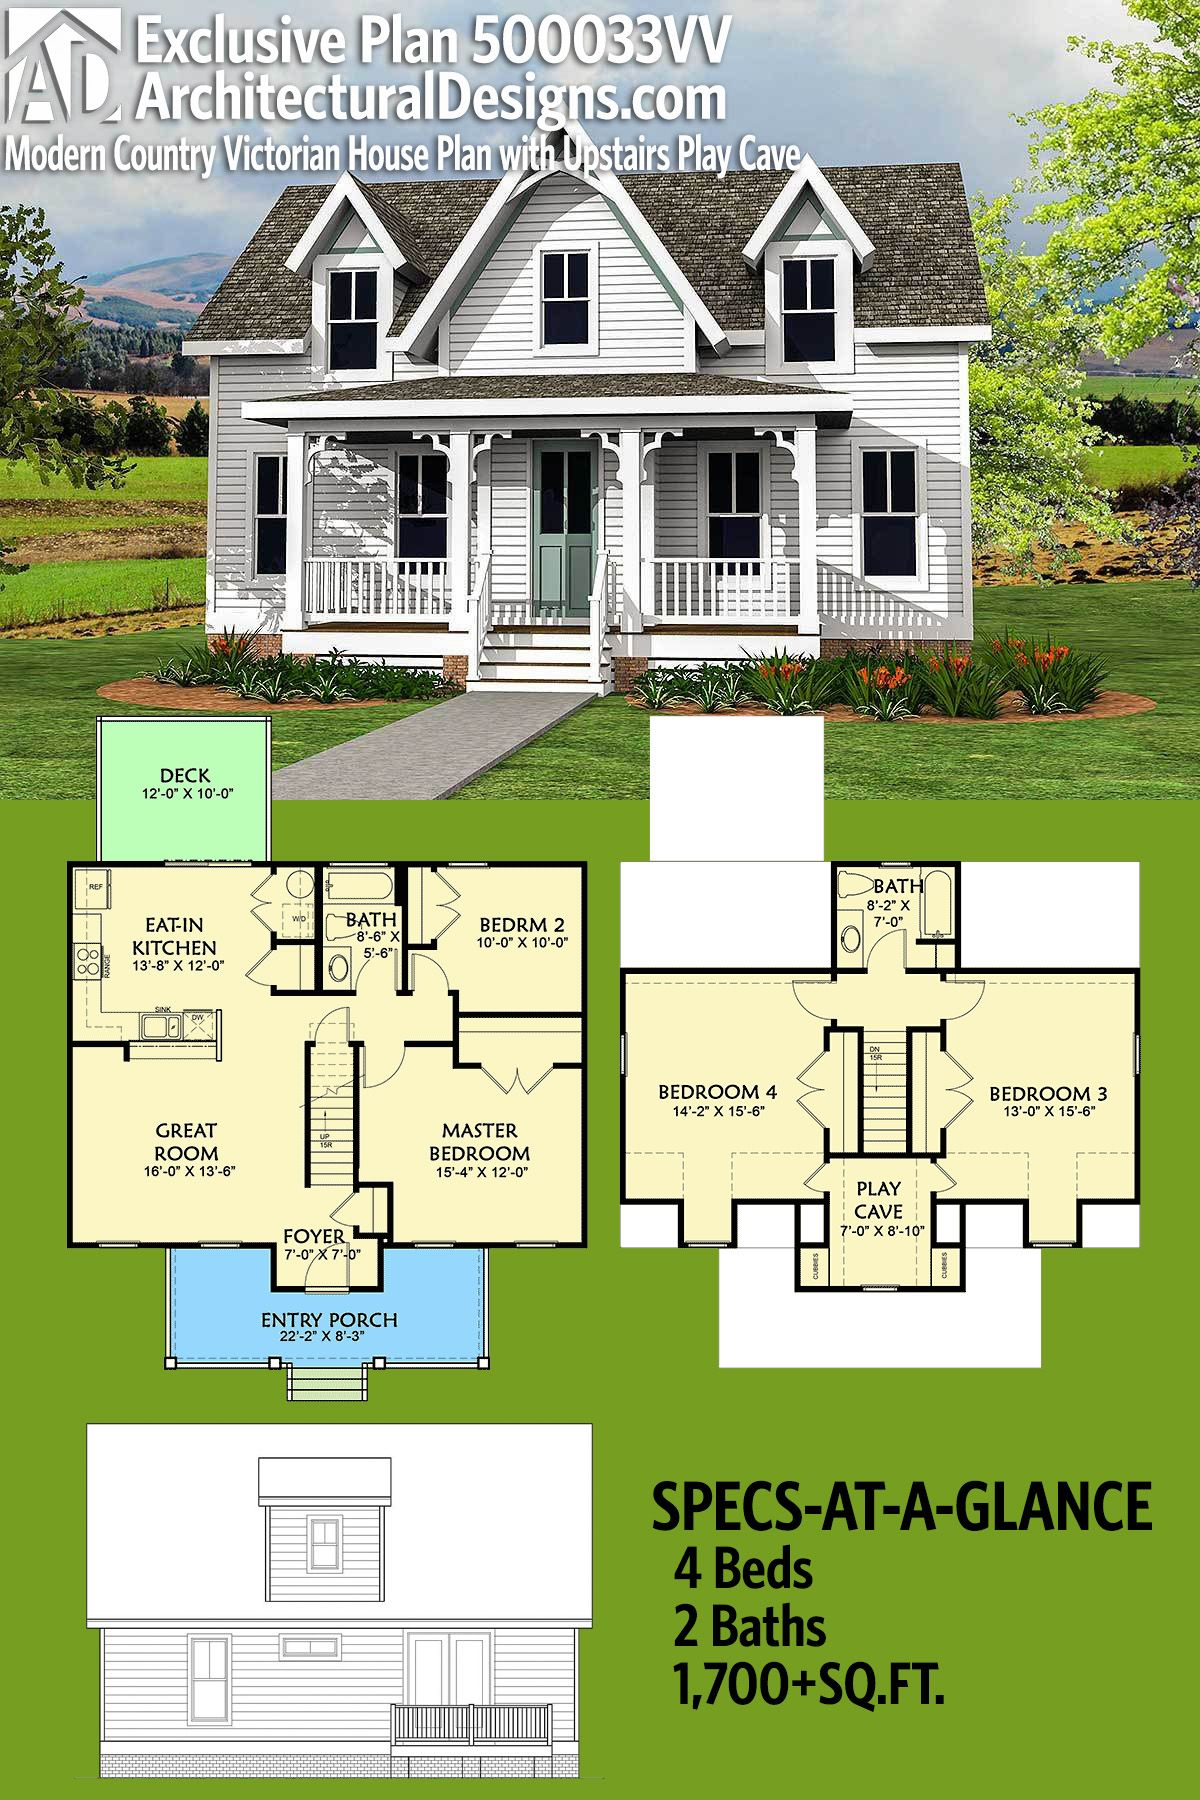 Plan 500033vv Modern Country Victorian House Plan With Upstairs Play Cave Victorian House Plans House Plans Farmhouse Country House Plans